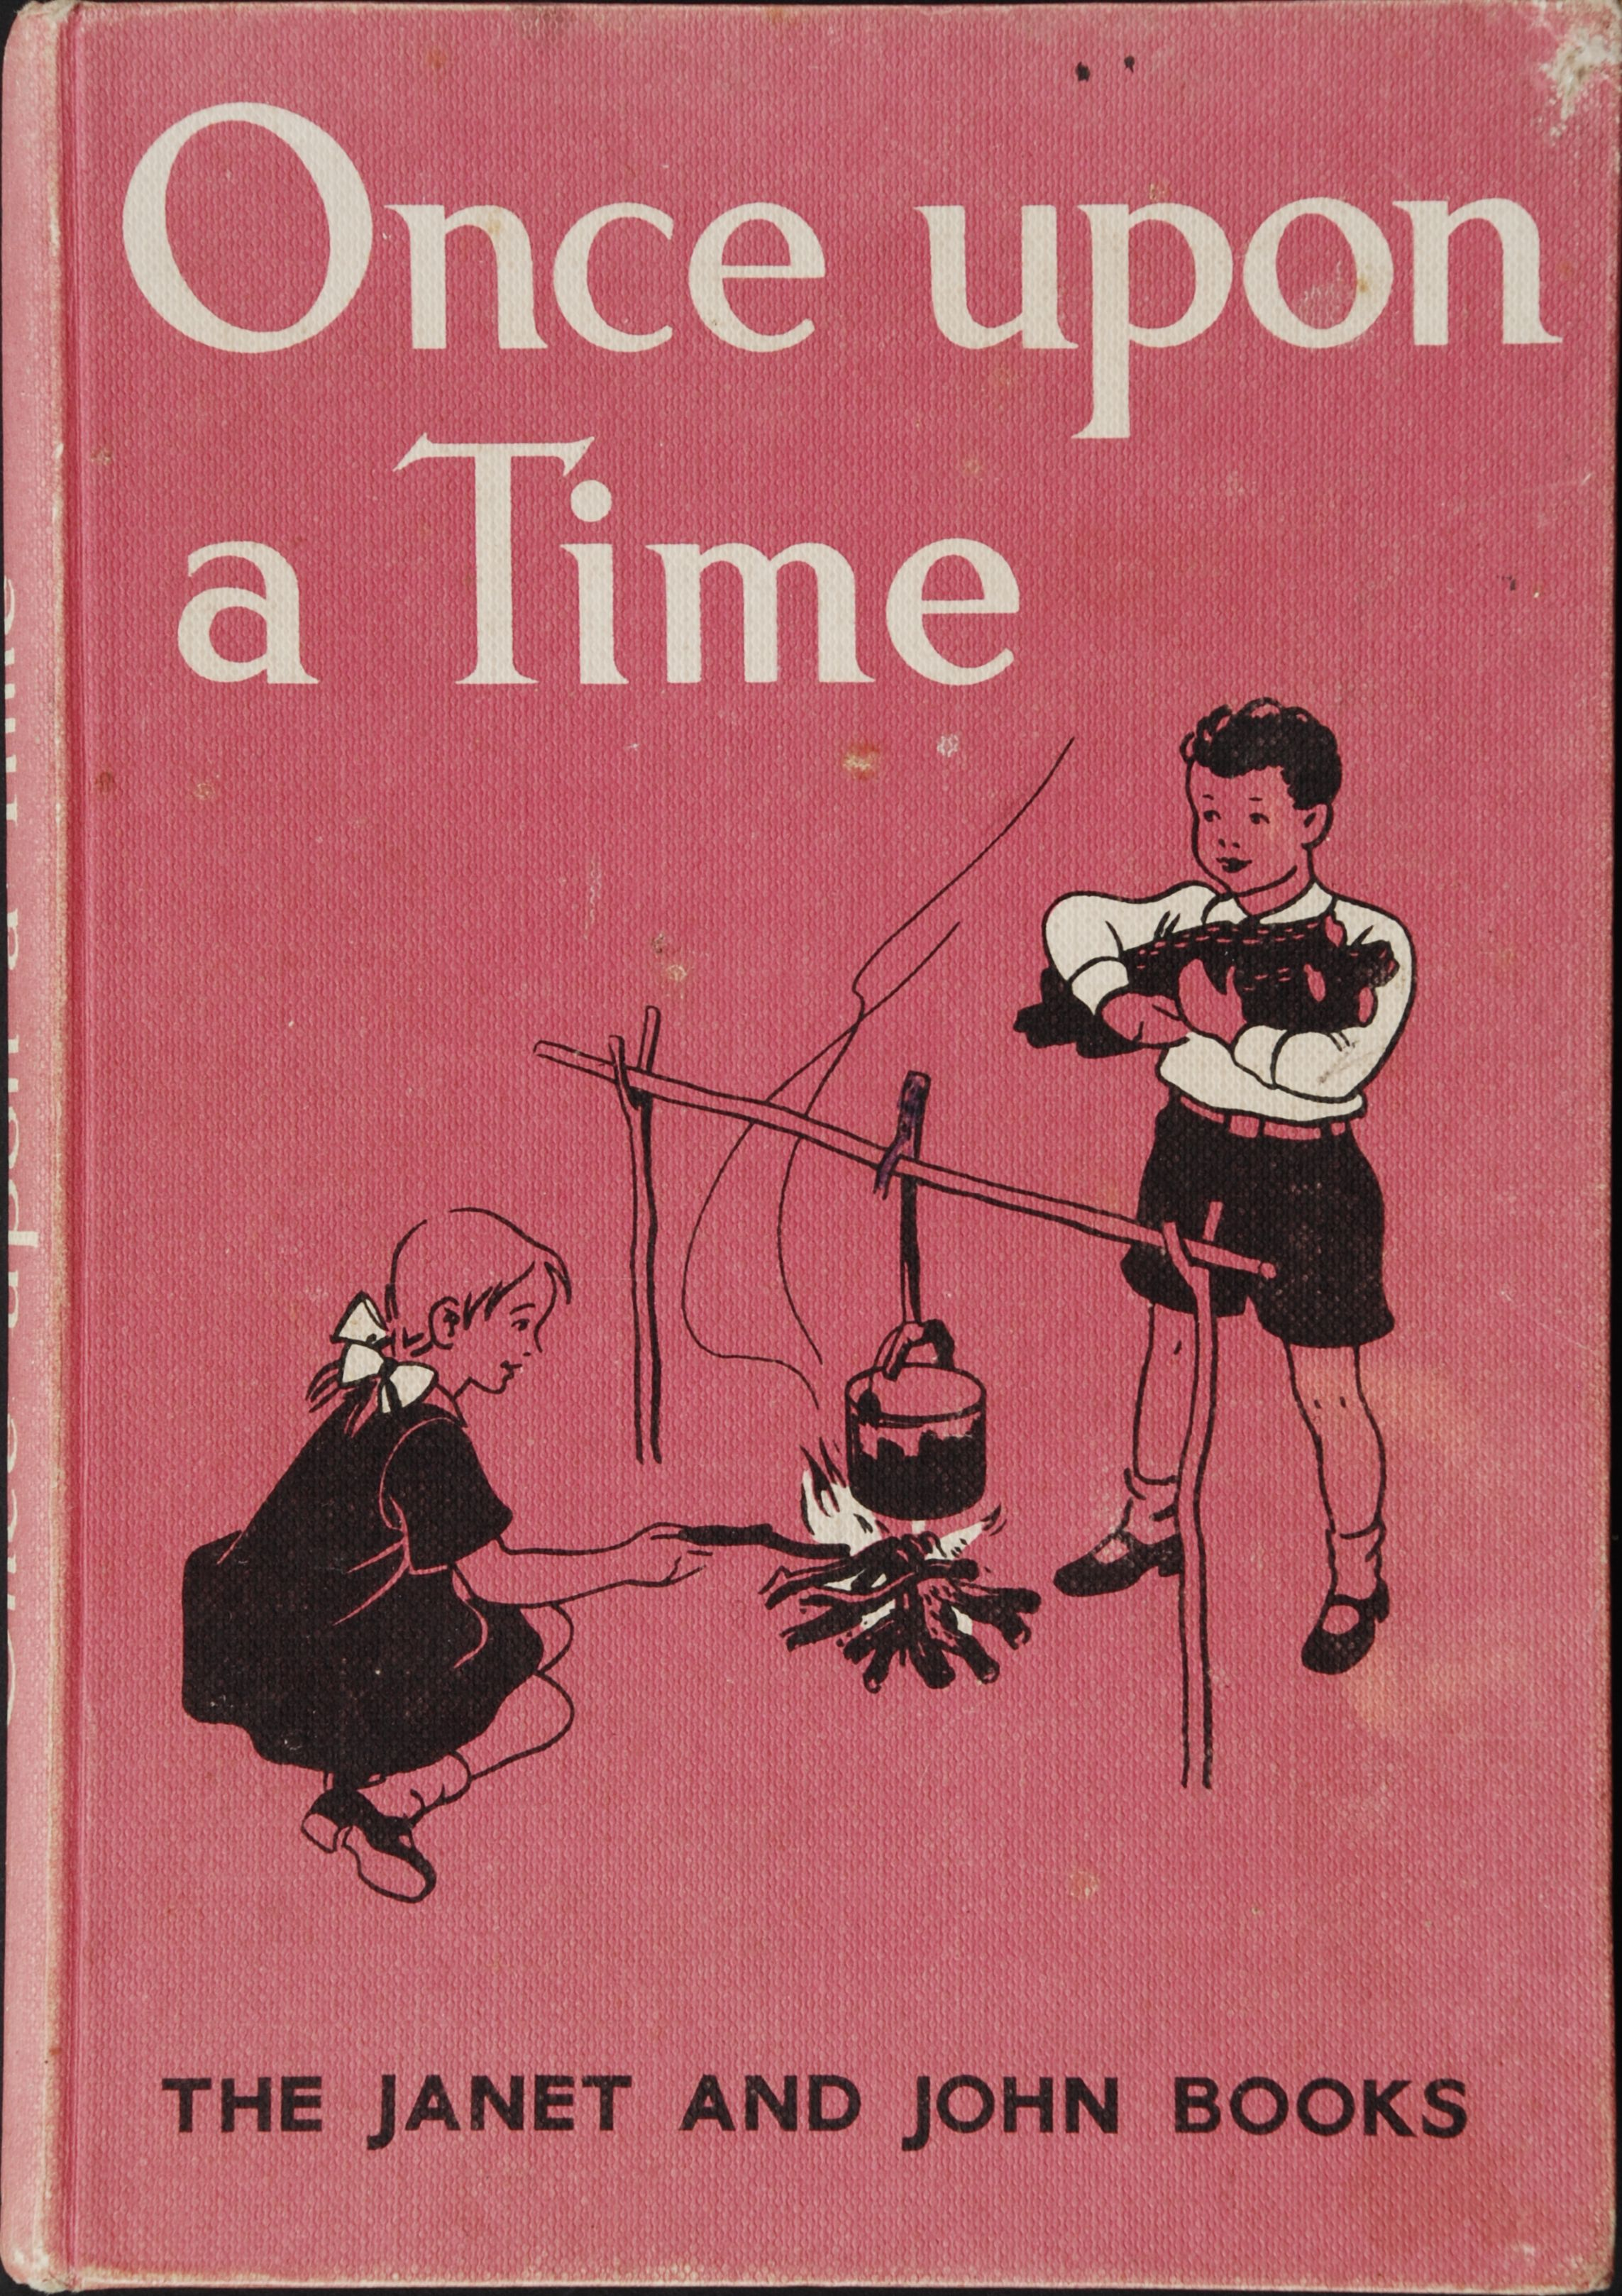 Mabel O'Donnell and Rona Munro. Once upon a time.  London, James Nisbet and Co. Ltd., 1951.